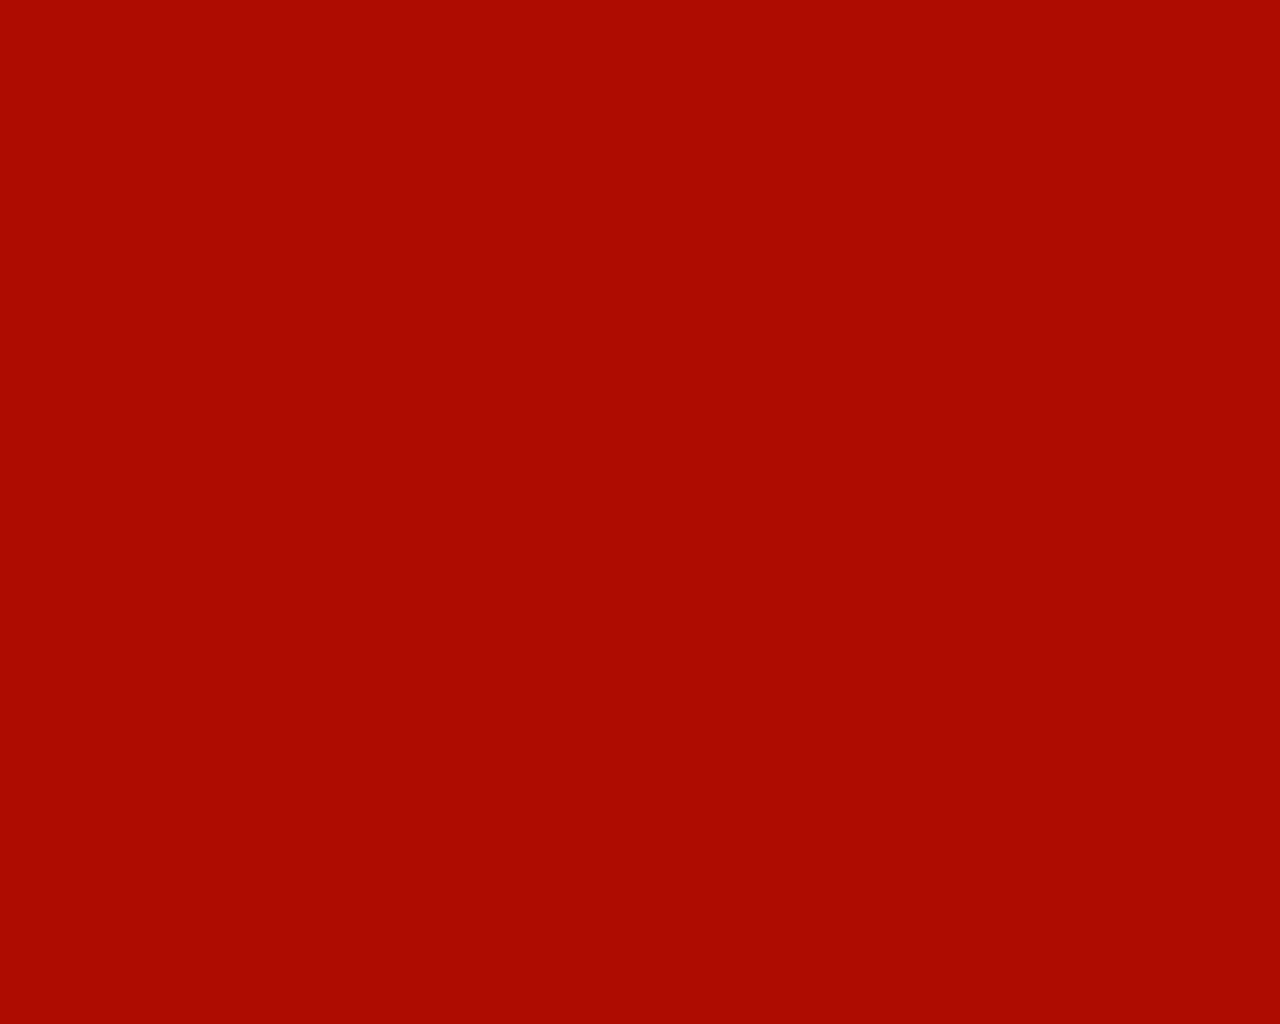 1280x1024 Mordant Red 19 Solid Color Background